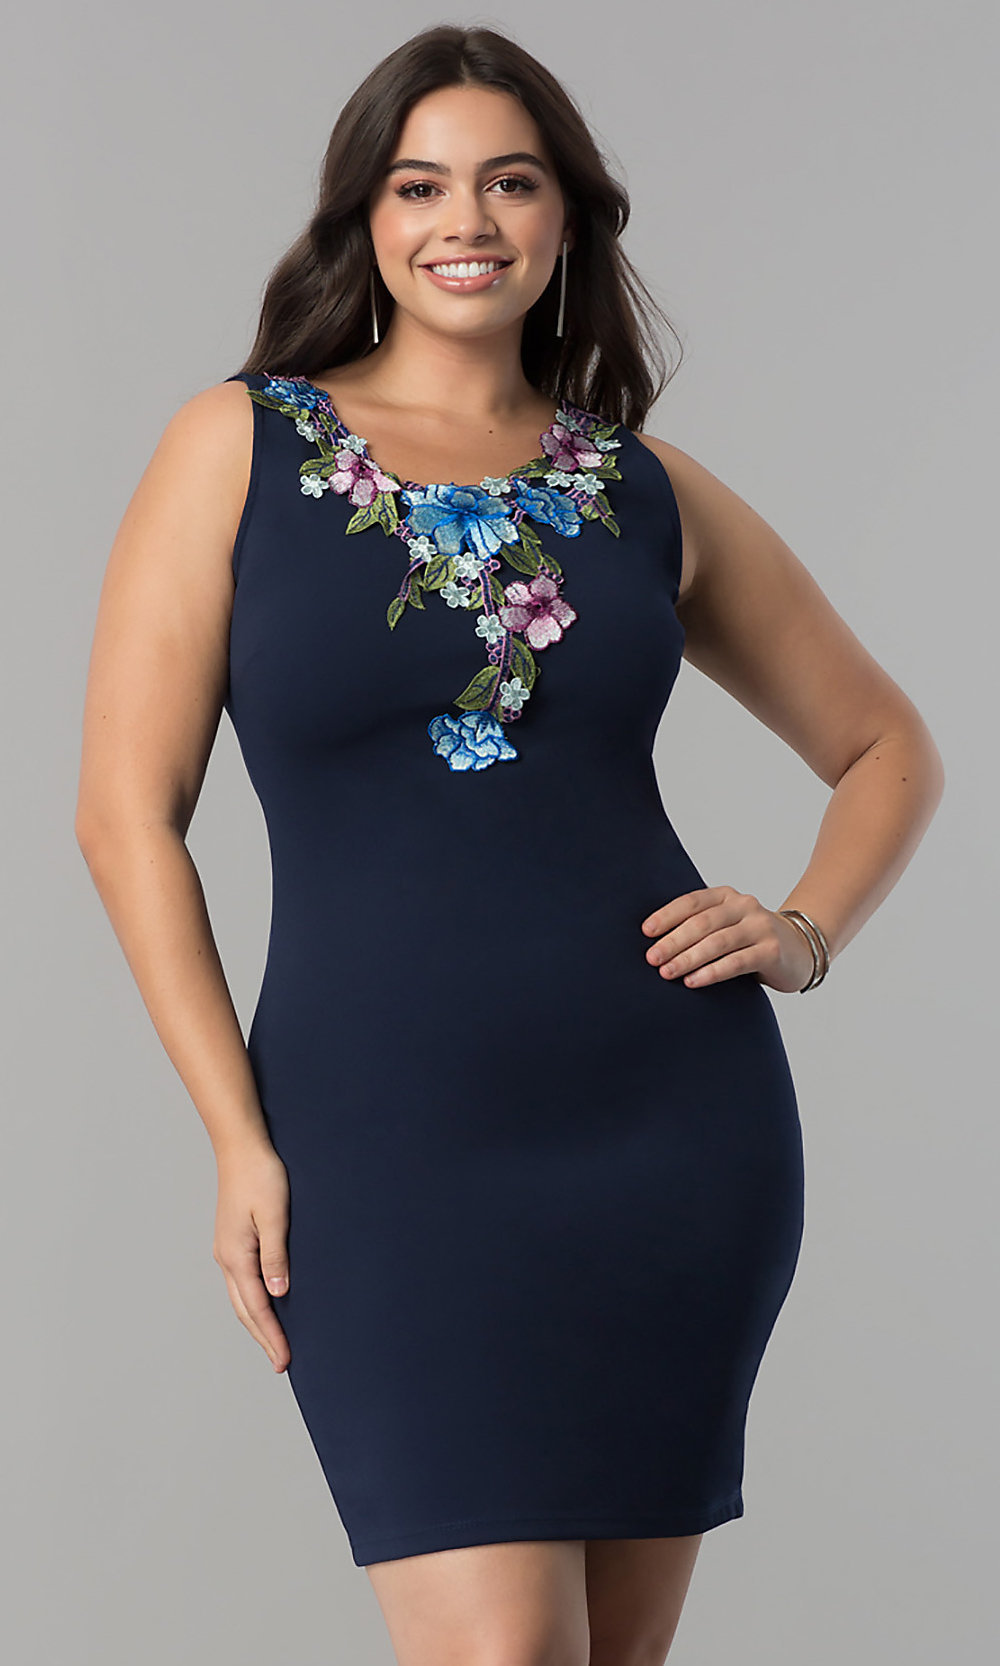 Plus Size Prom Dresses For Under 50 Dollars – DACC